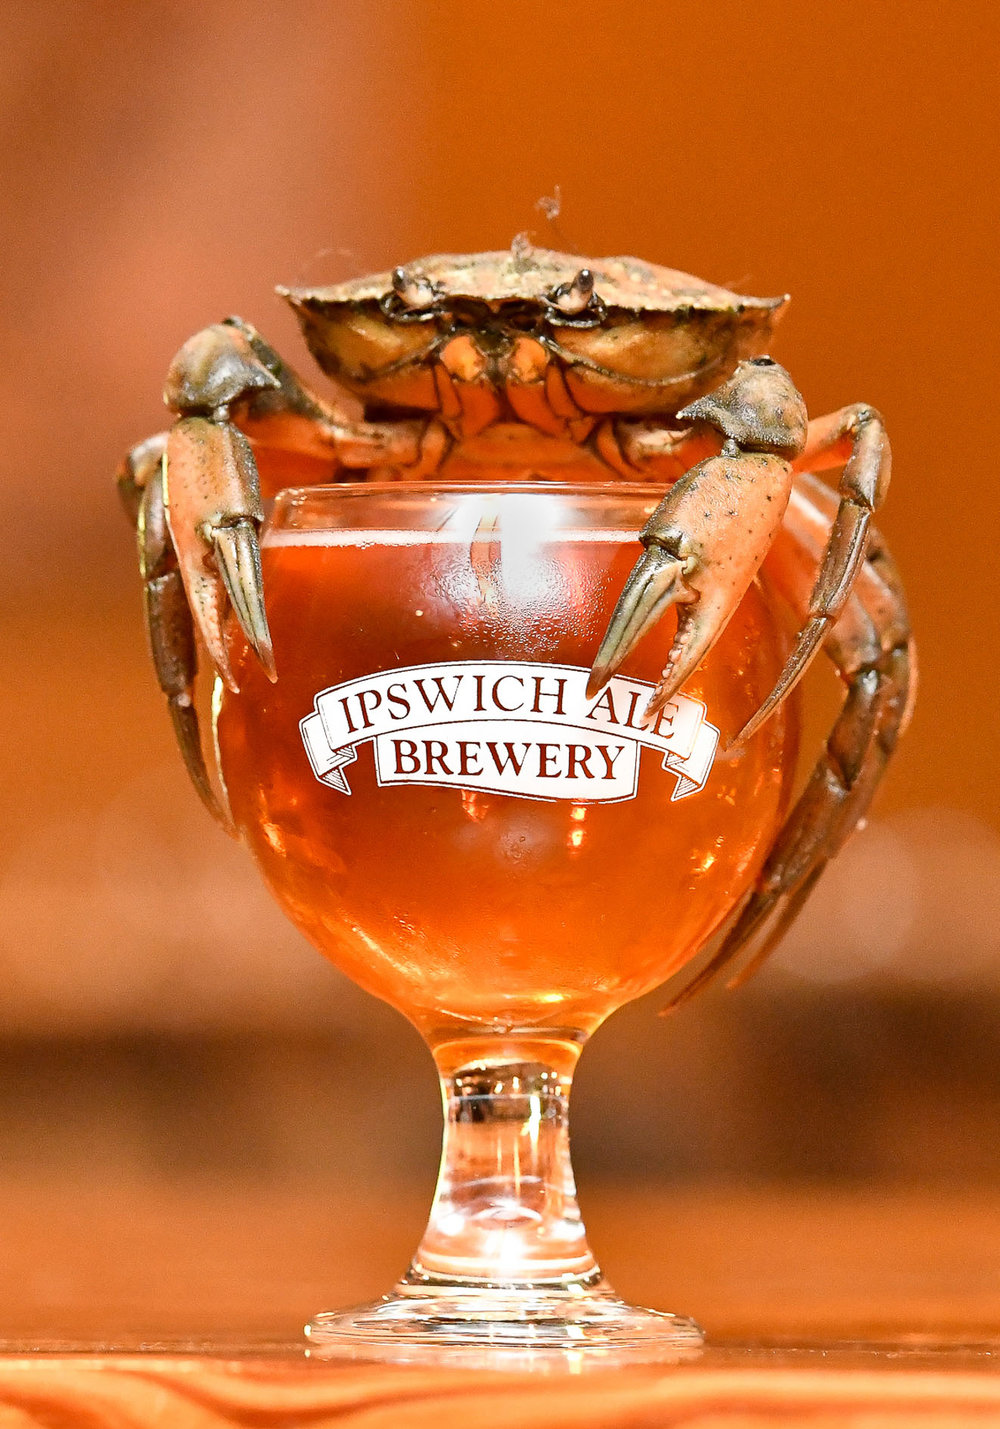 1st Place, Photo Illustration  A green crab rests on the top of a glass of beer inside the Ipswich Ale Brewer's Table to promote Ipswich Cask and Clam week, to be held May 8th-13th, 2017.